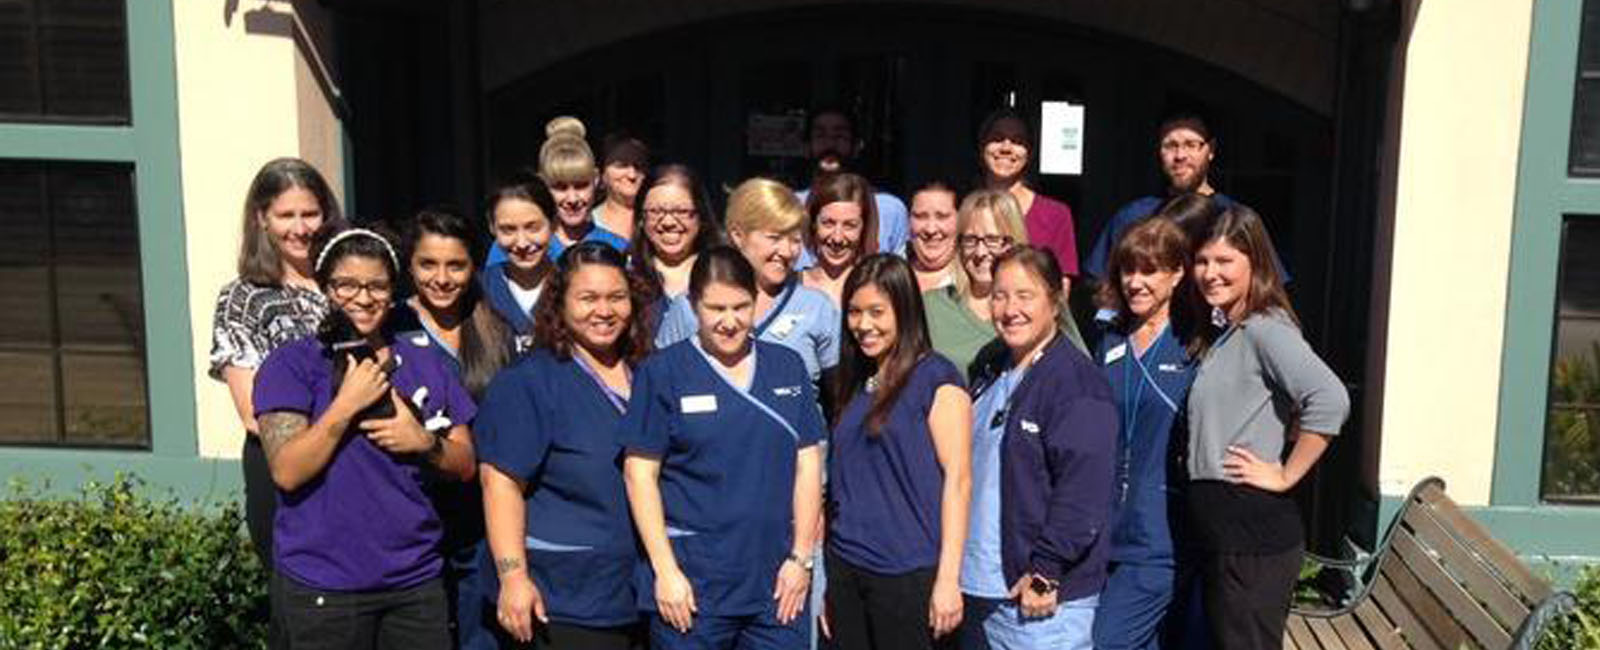 Homepage Team Picture of VCA Holly Street Animal Hospital